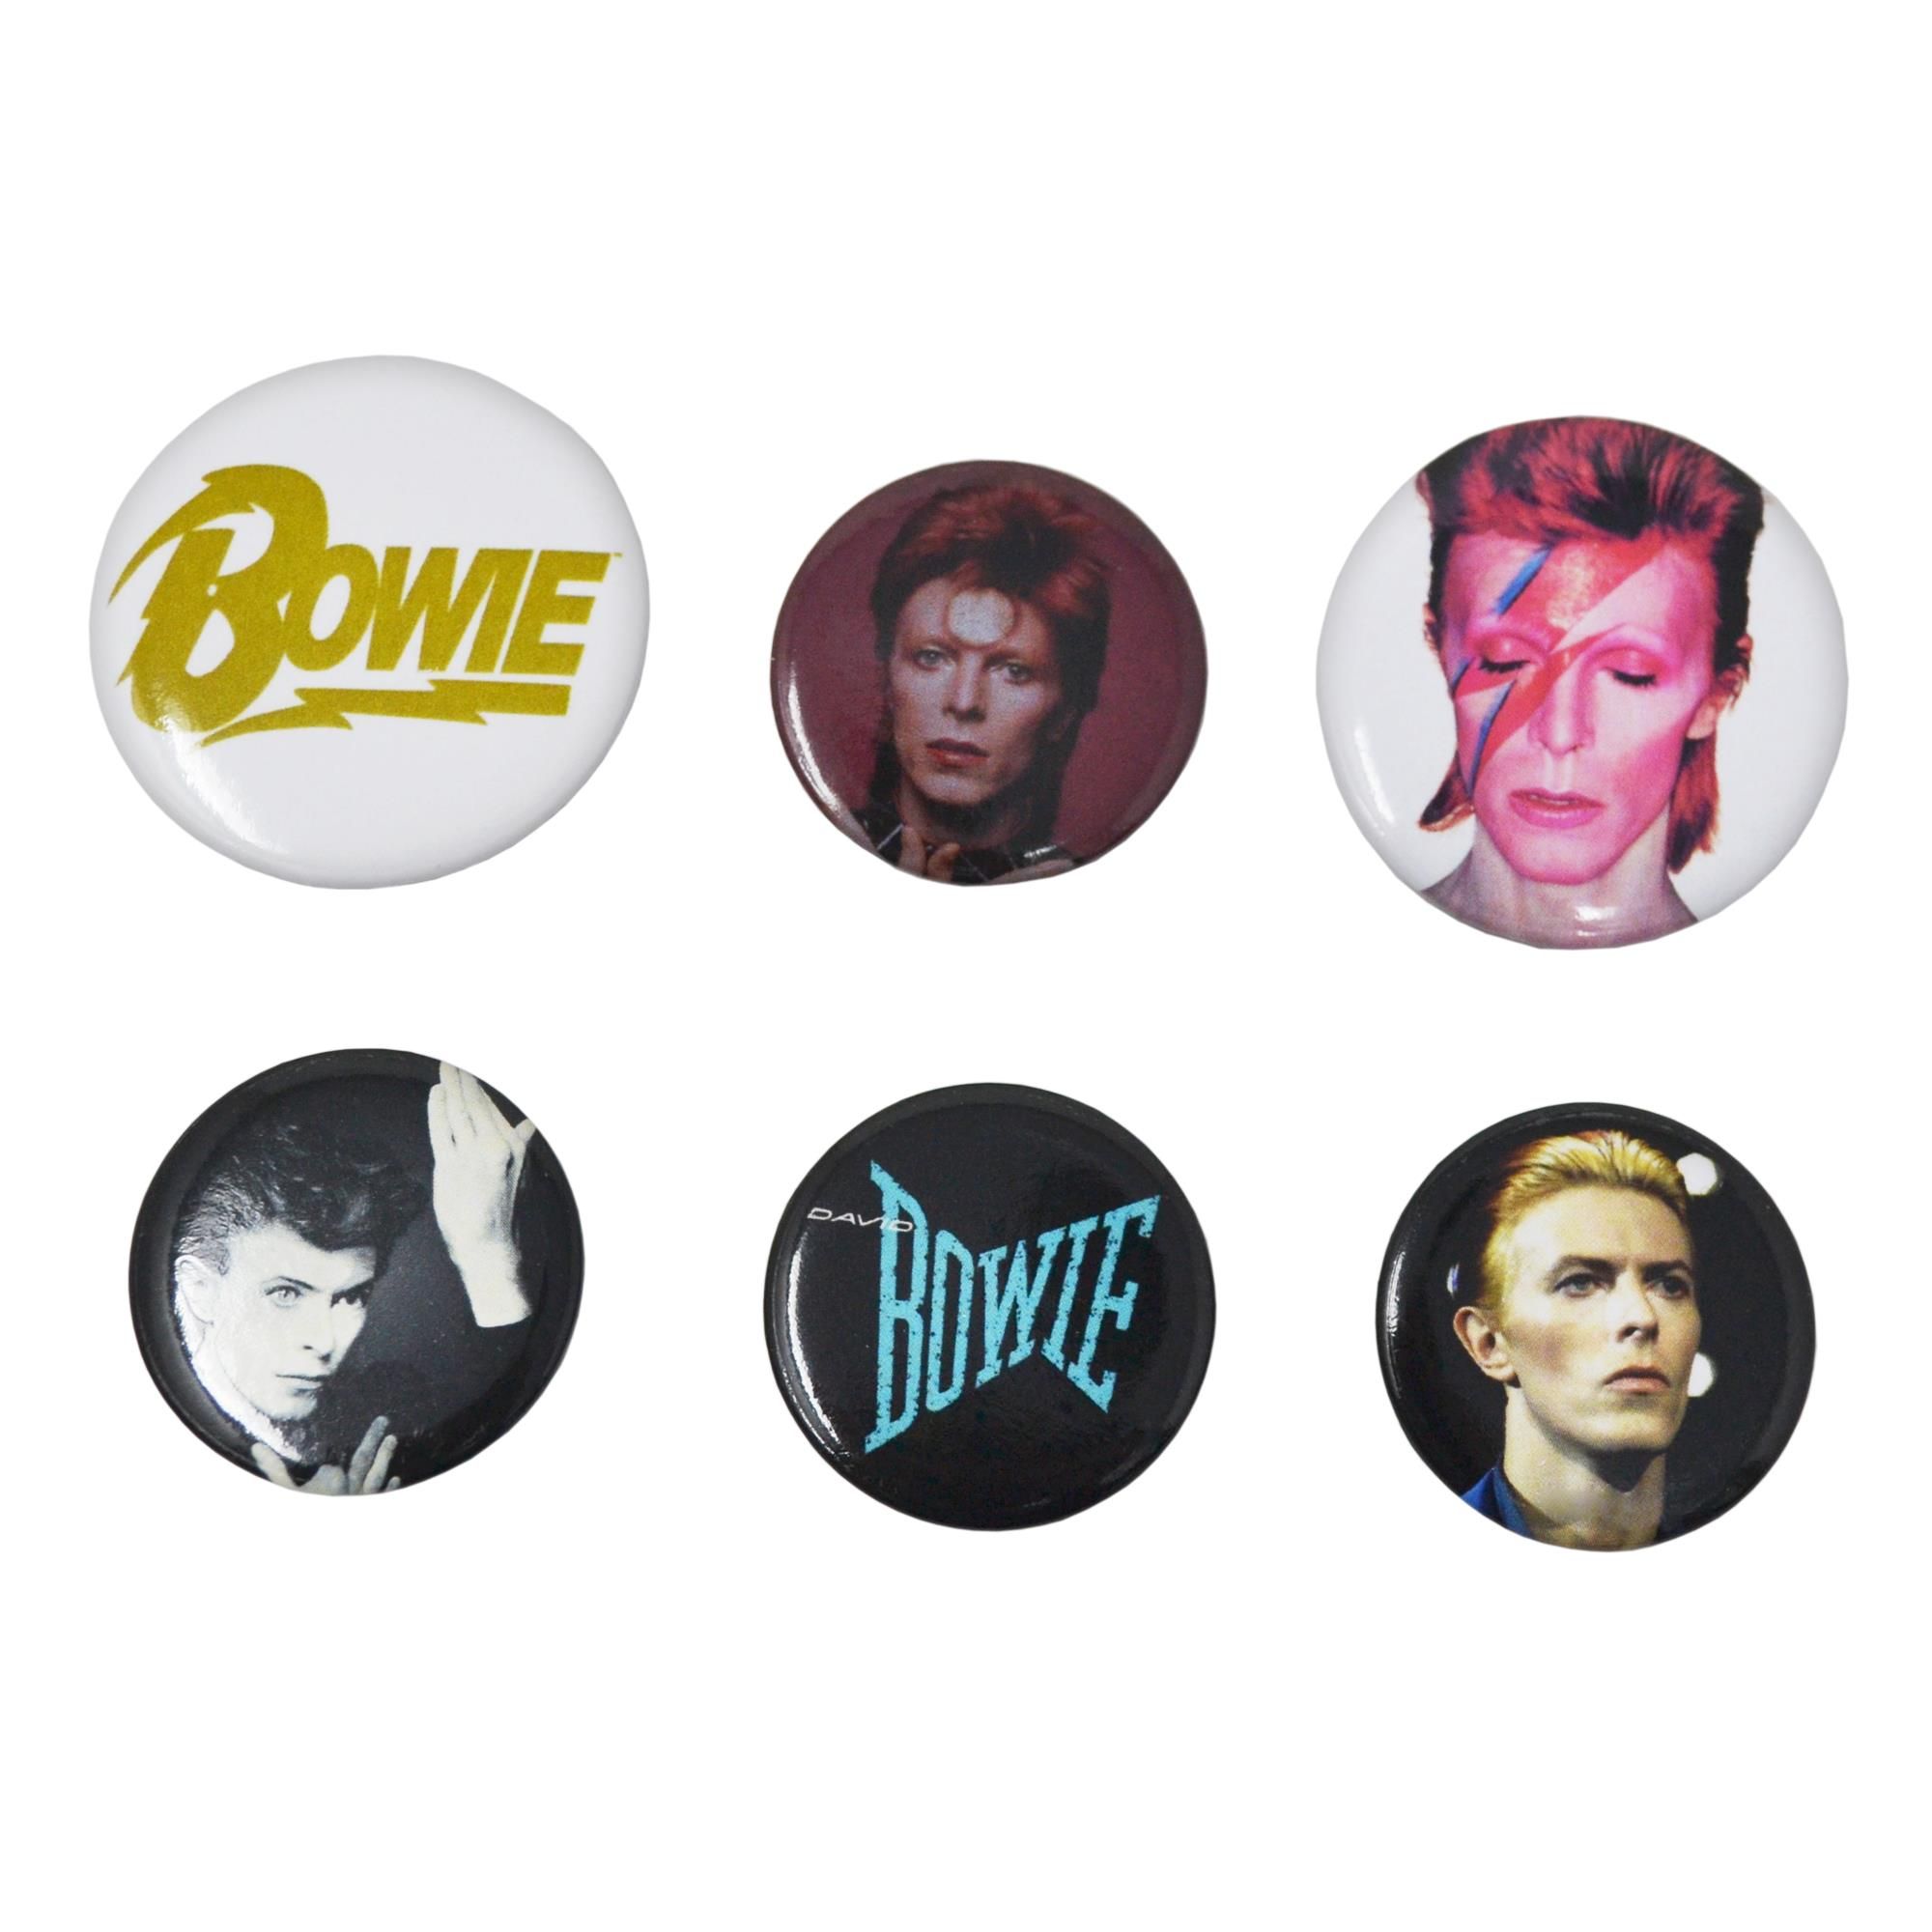 BOWIE - Button Badges - 6 pcs